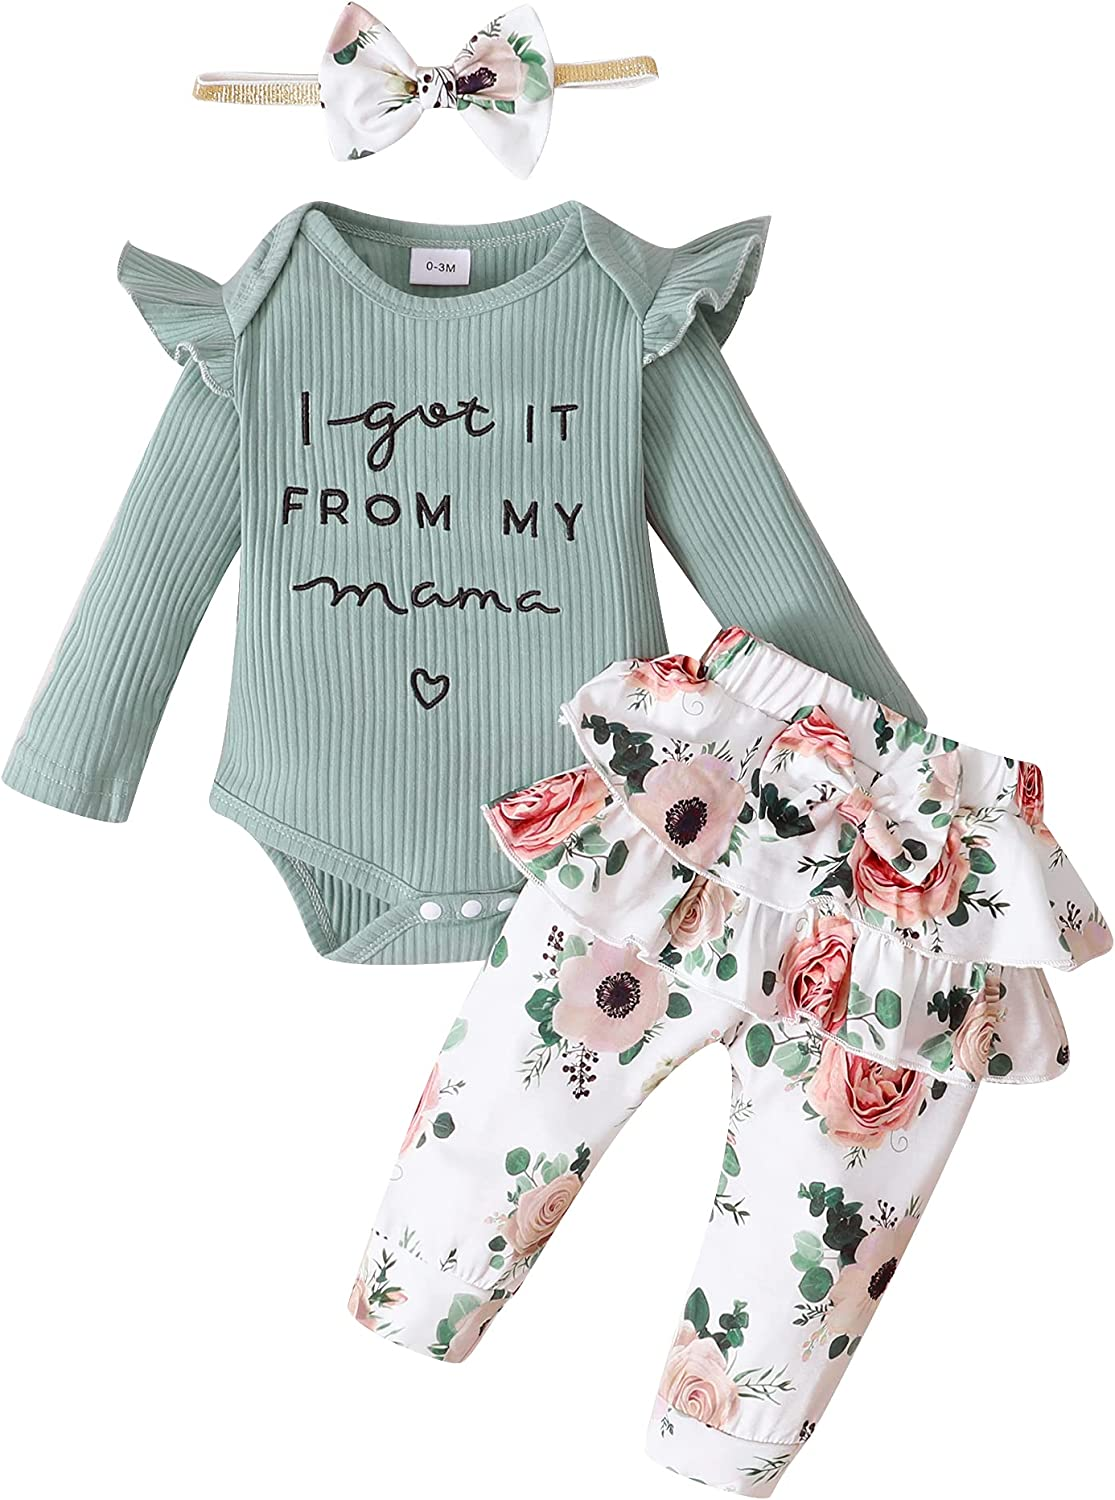 Newborn Infant Baby Girl Clothes Romper Onesie Pants Set Floral Outfits Cotton Newborn Girl Outfits